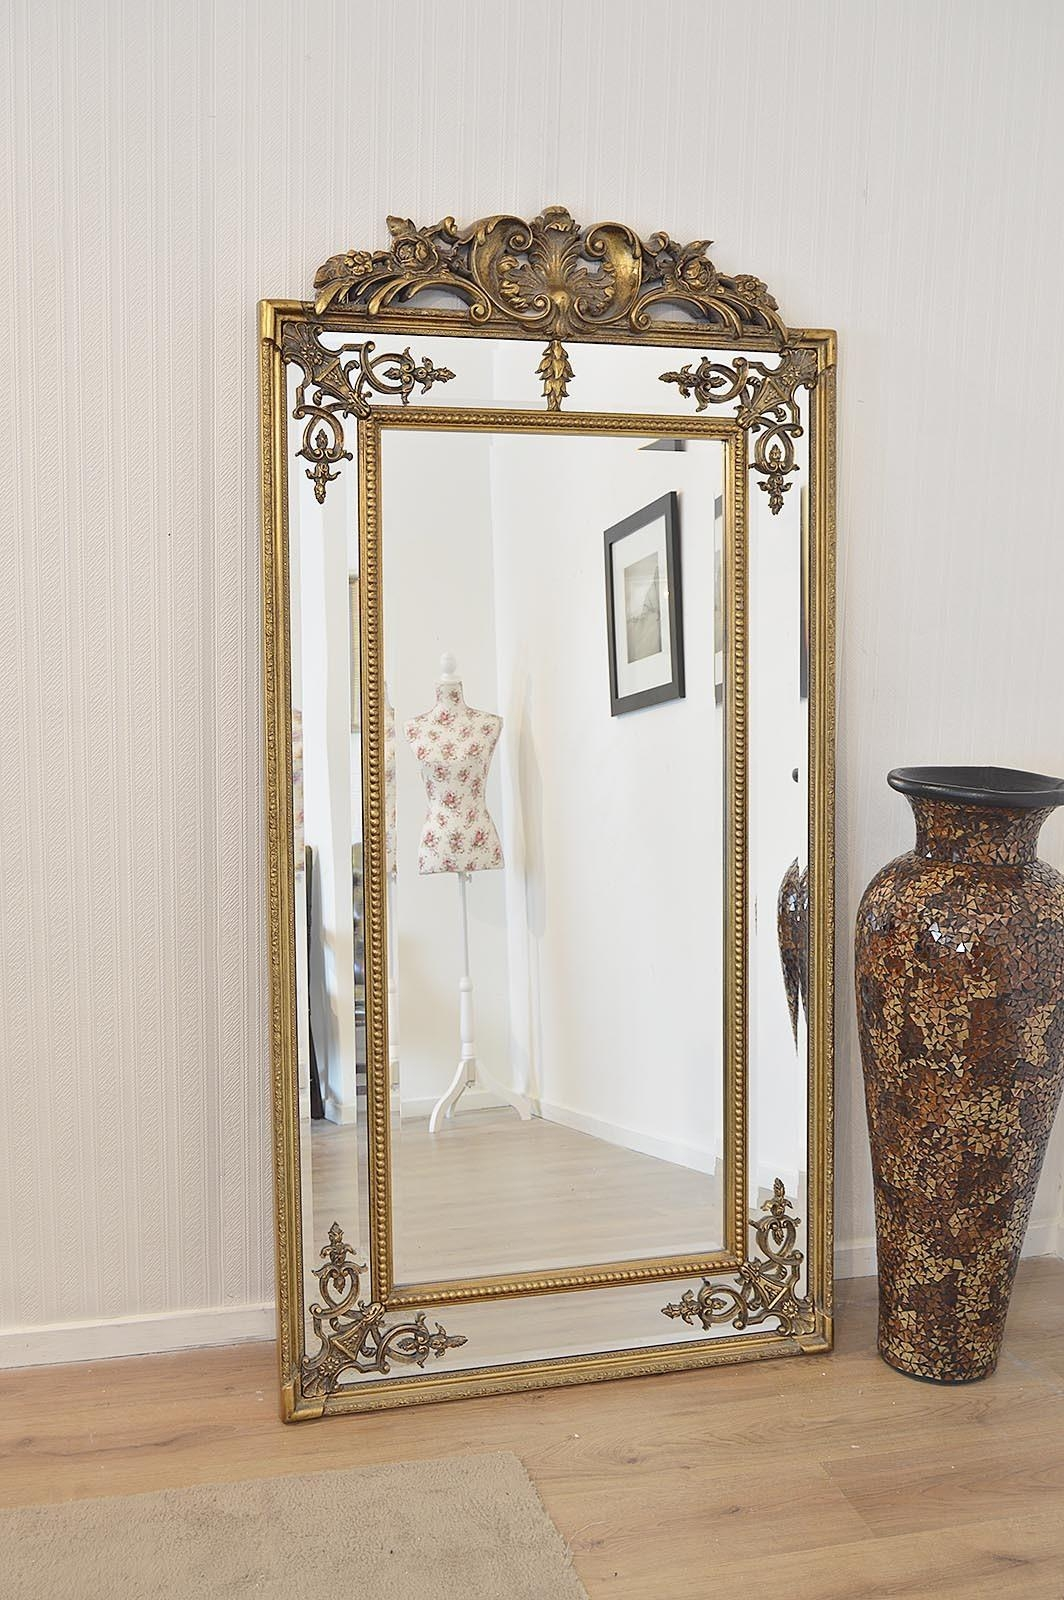 Ornate Mirrors For Sale 23 Beautiful Decoration Also Zoom Regarding Ornate Gold Mirrors (Image 15 of 20)